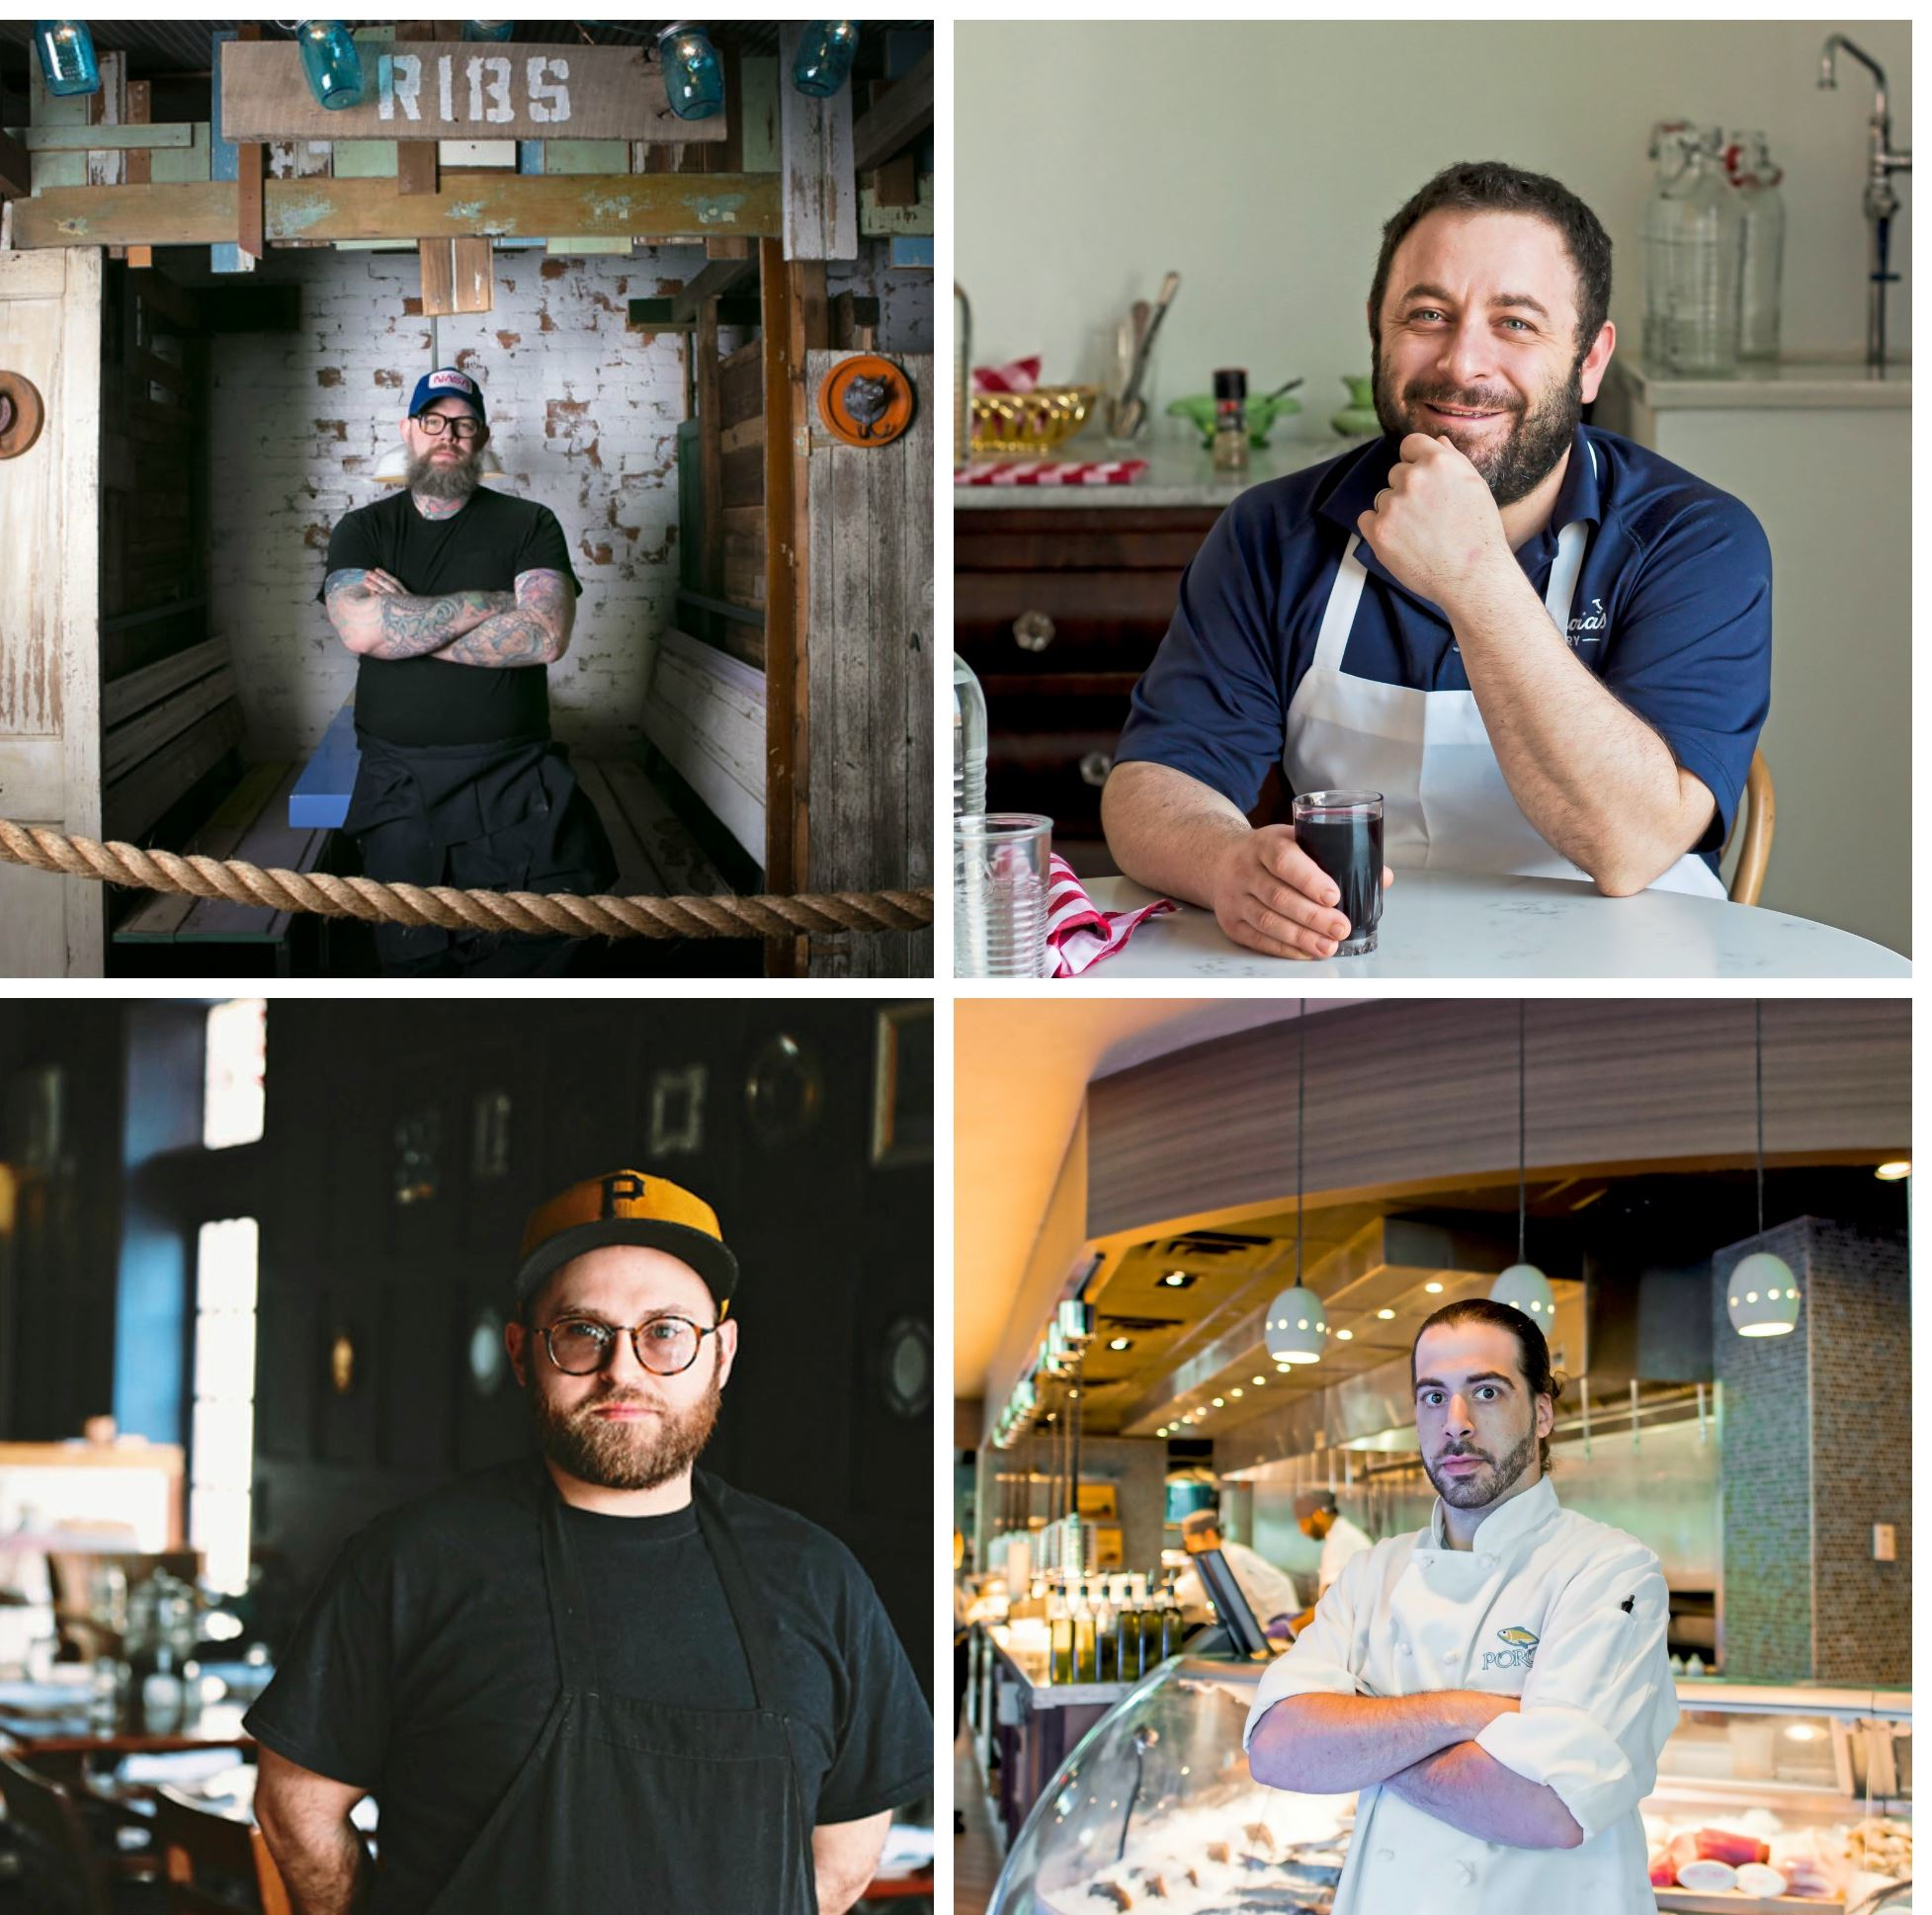 lamb chef 3 Clockwise from top left: Keith Fuller, Pork and Beans; Dave Anoia, DiAnoia's Eatery Will Randall, Poros; Brandon Blumenfeld, Scratch F&B